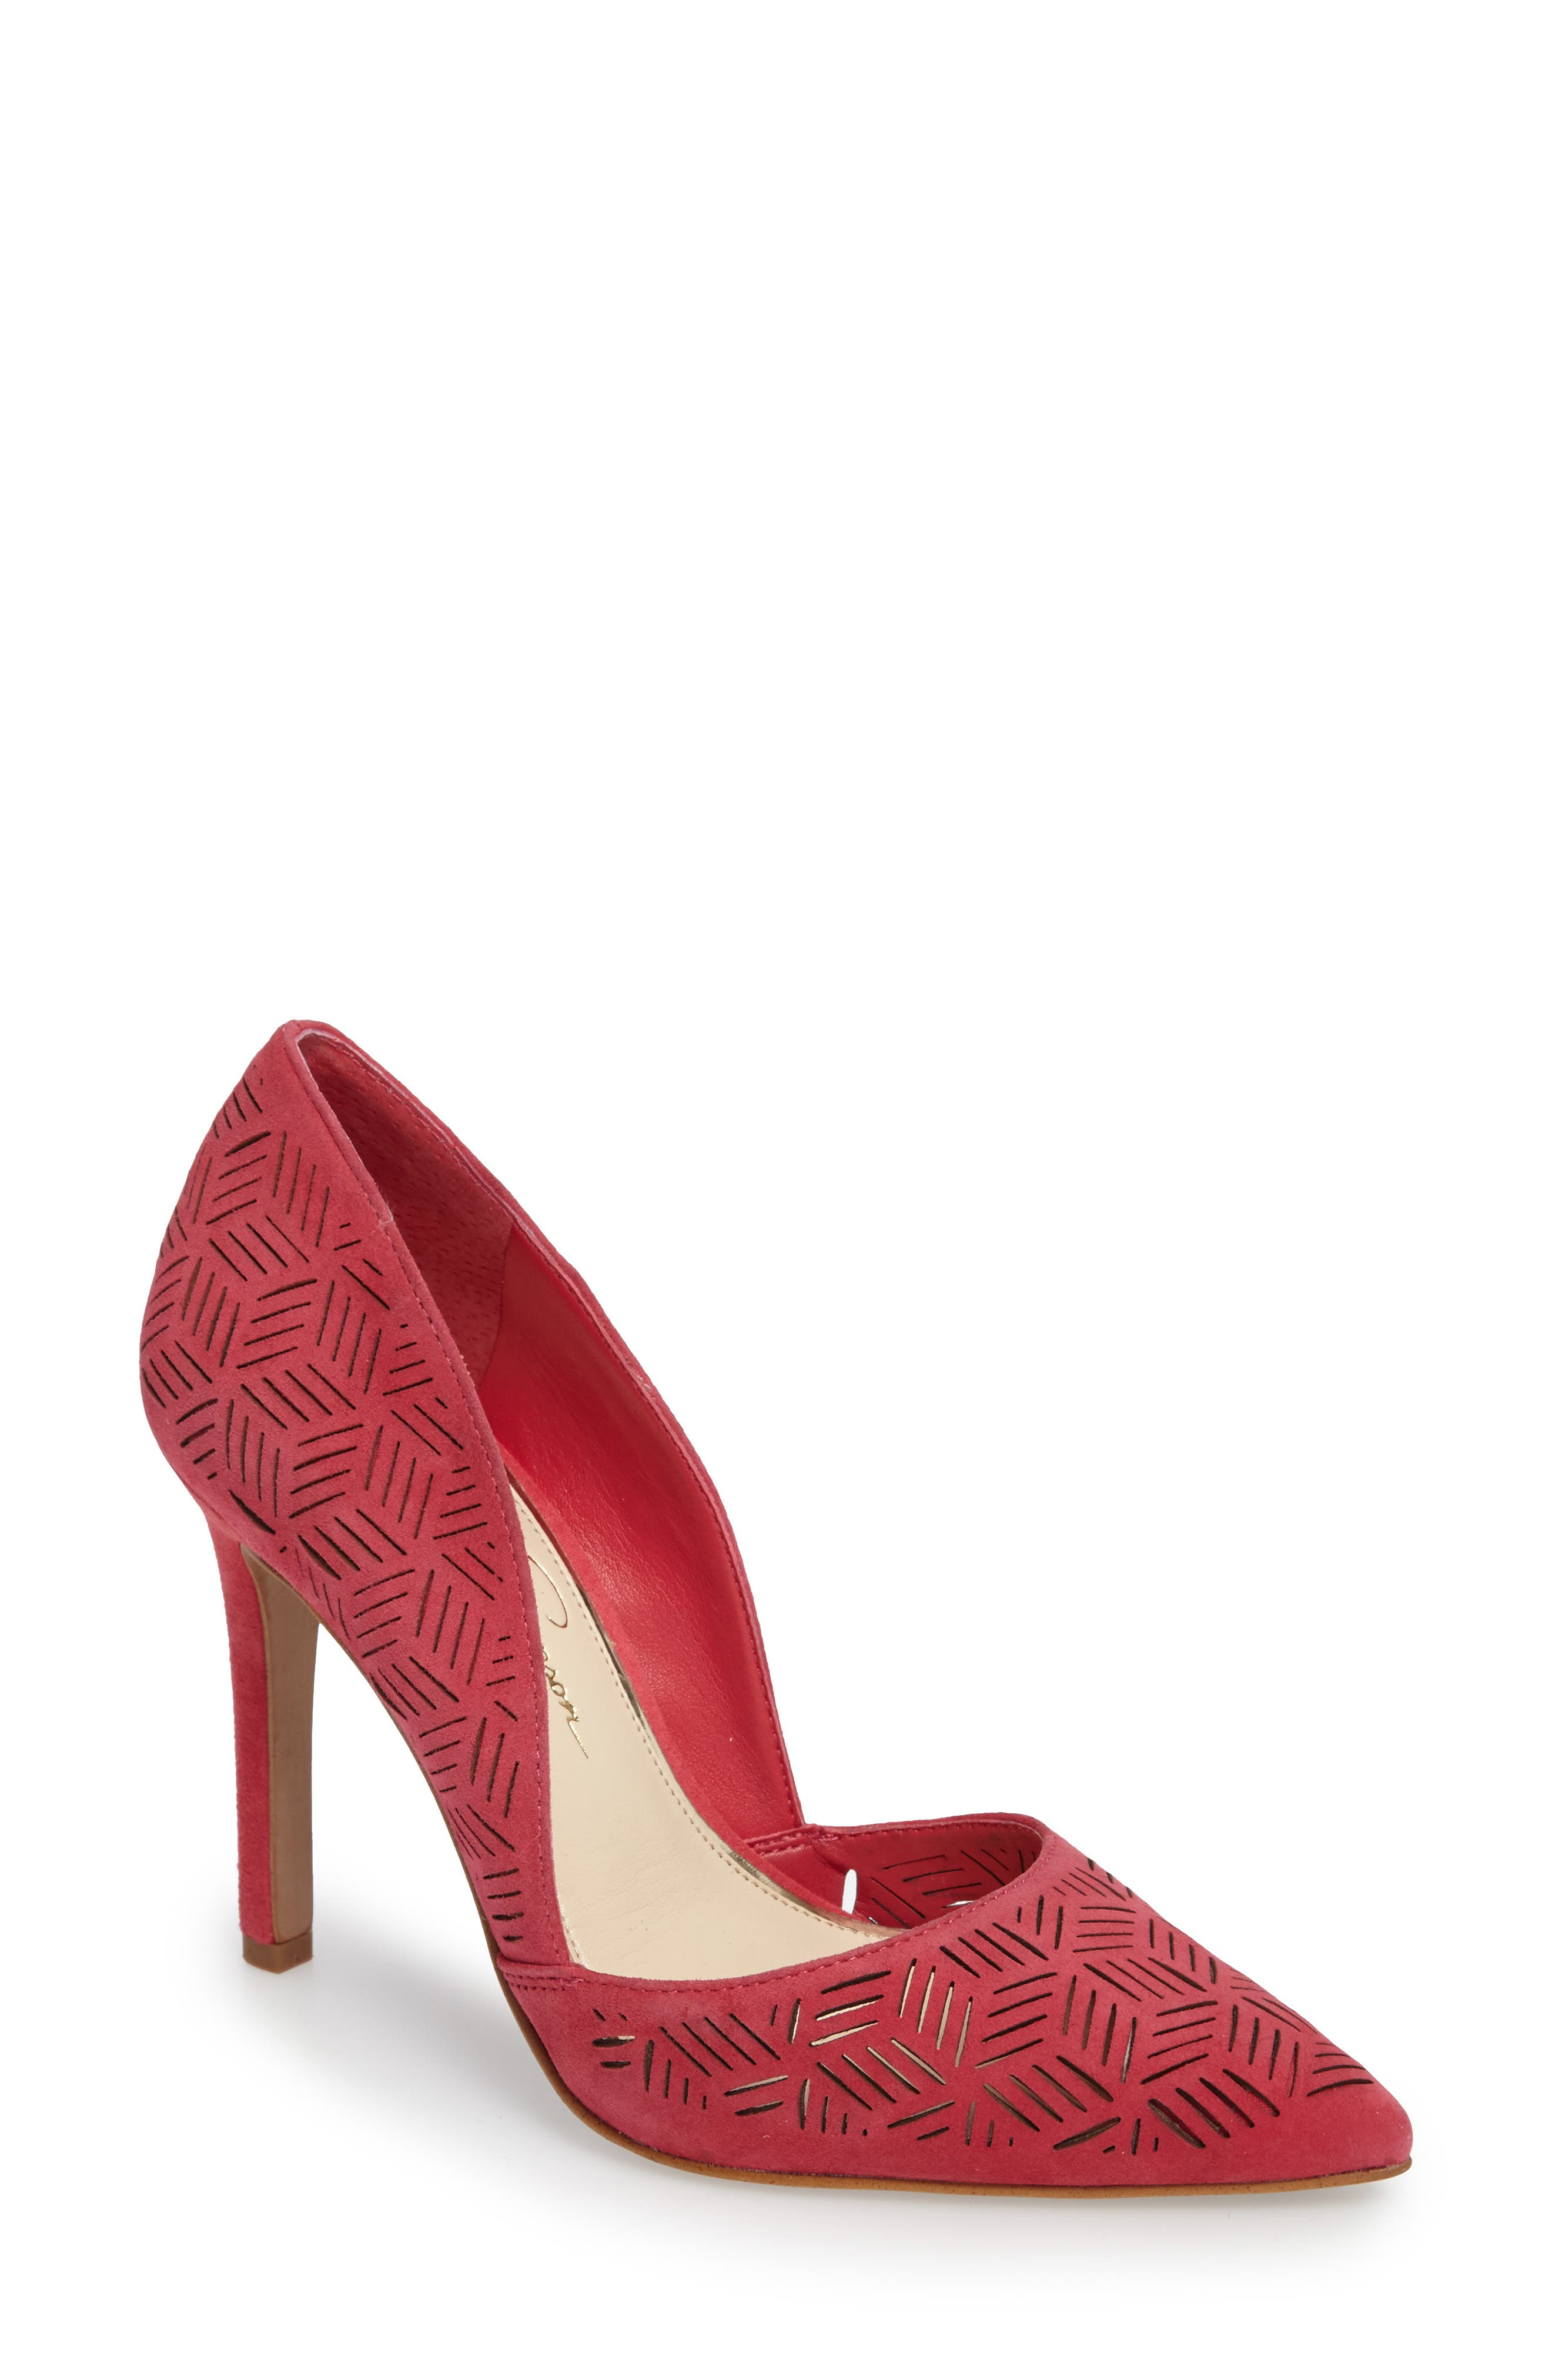 Main Image - Jessica Simpson Charie Pointy Toe d'Orsay Pump (Women)